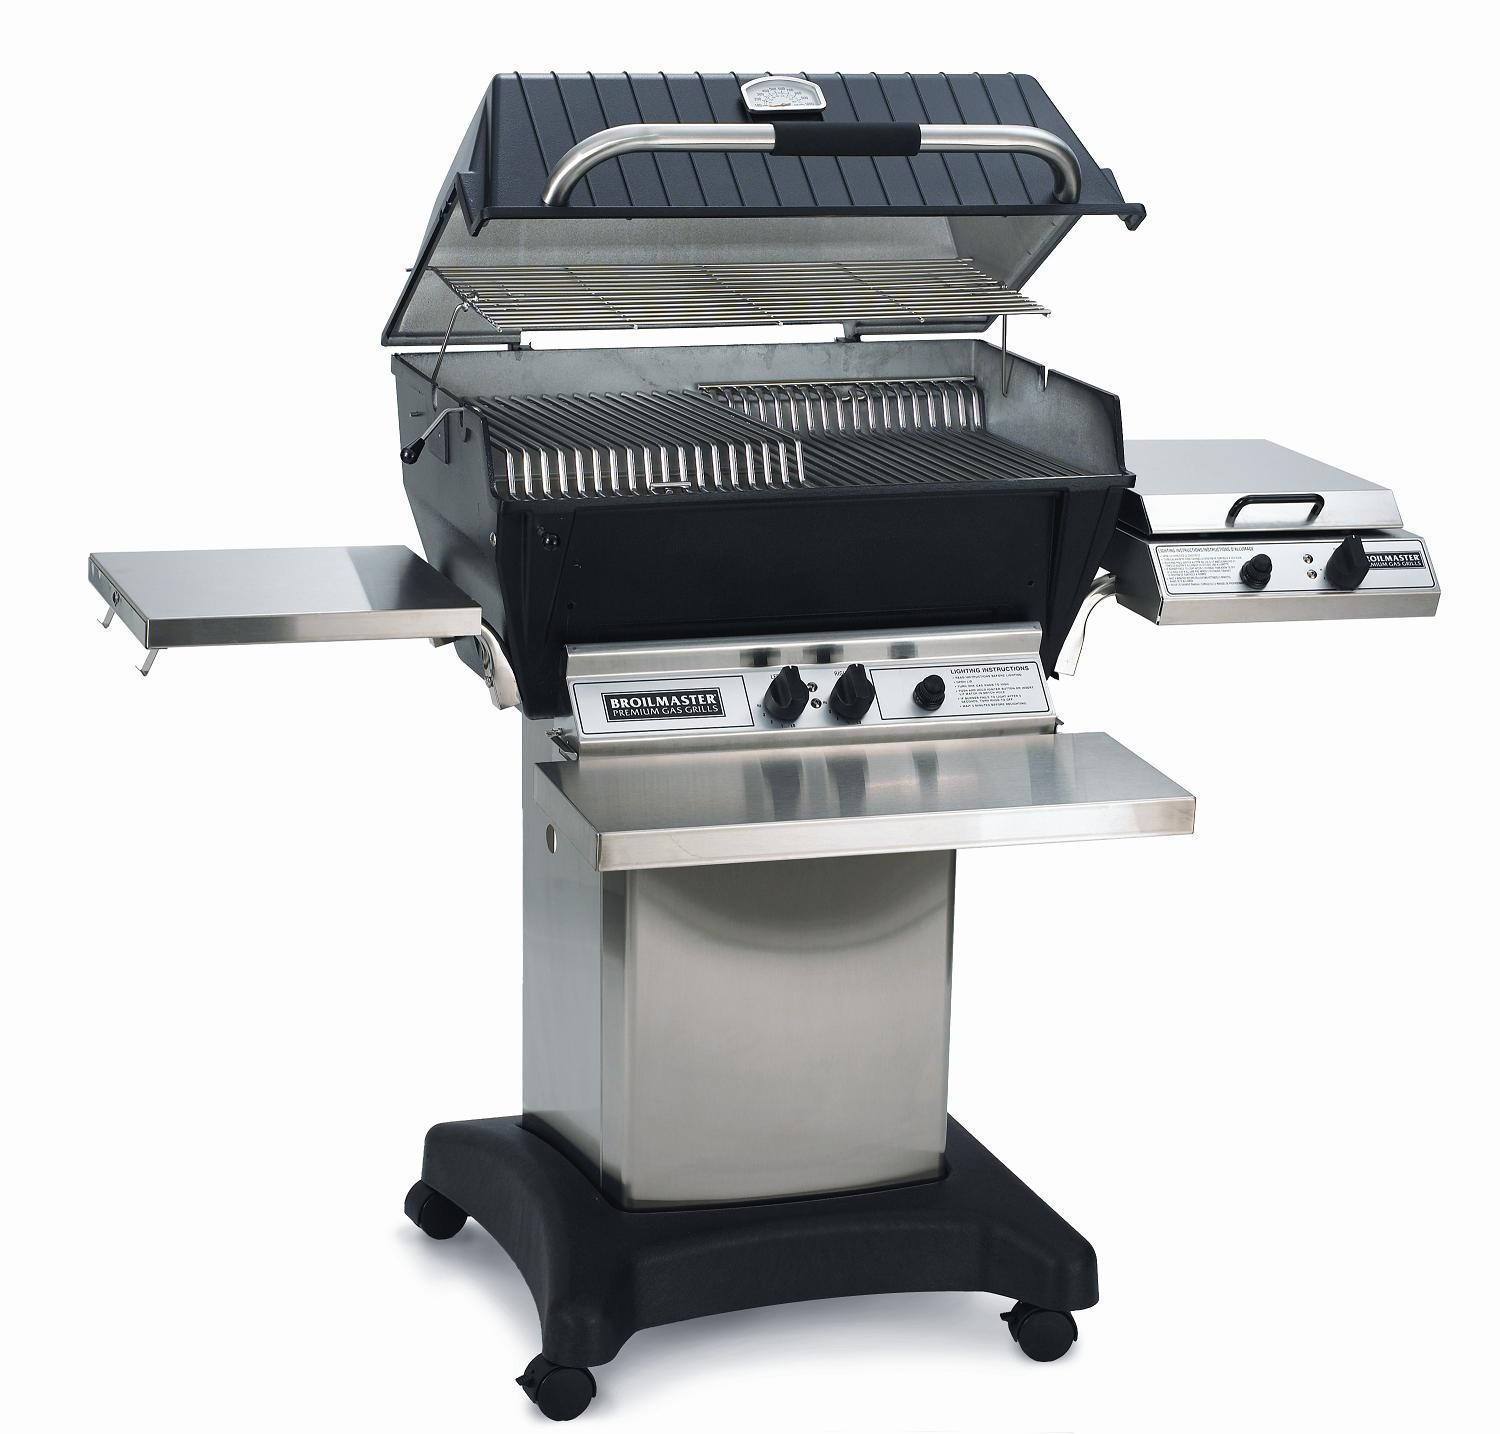 Broil Gasgrill Outdoor Gas Grills Gas Grills For Sale In Okemos Mi